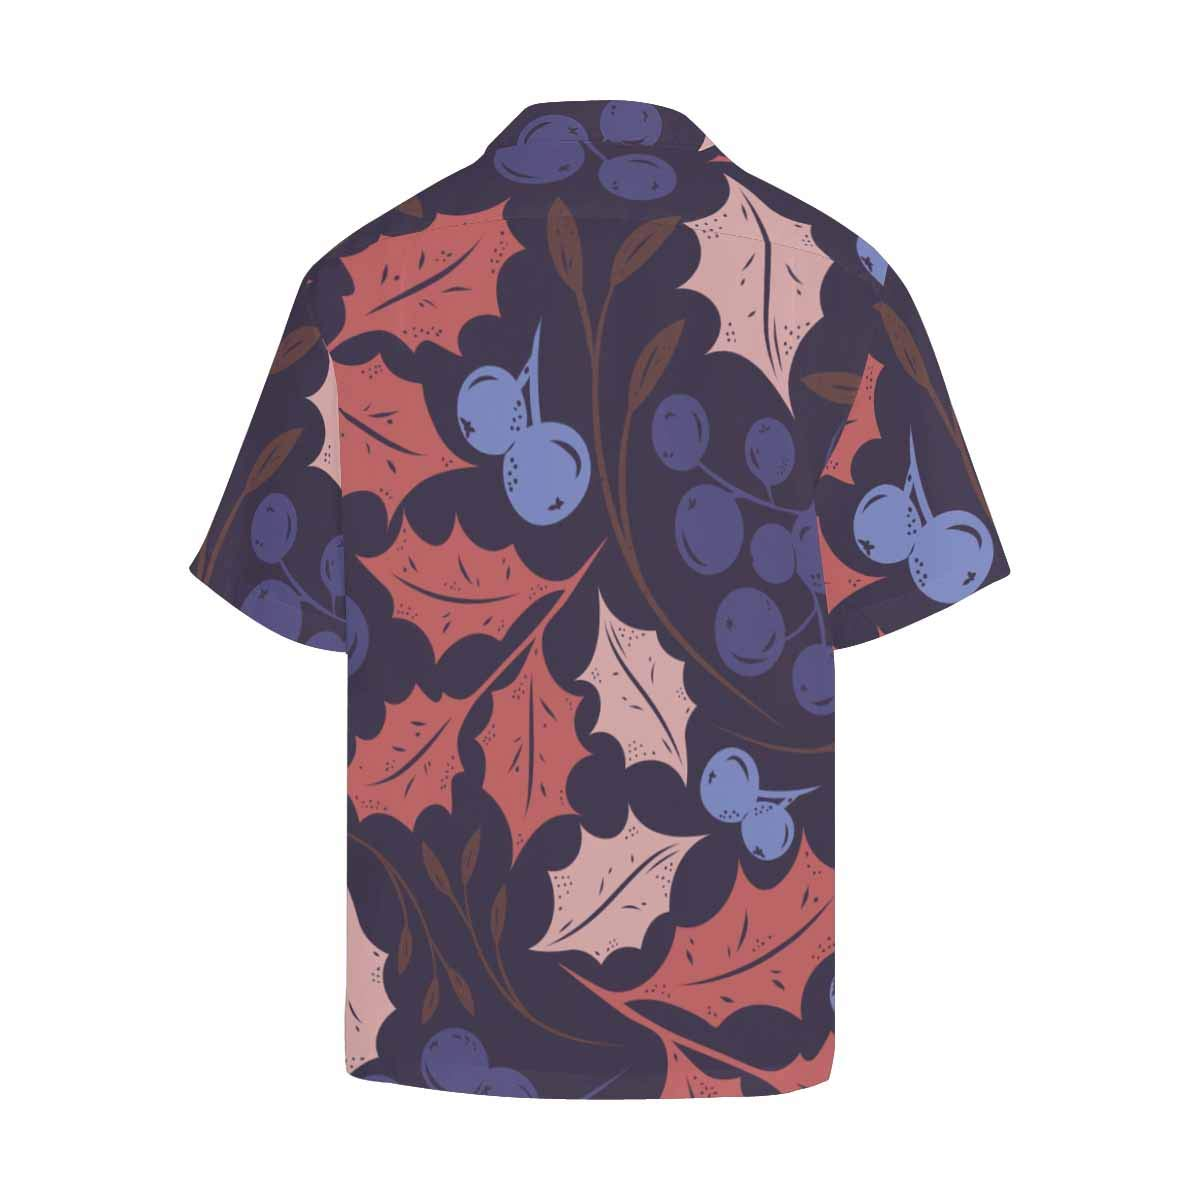 InterestPrint Comfortably Collared Floral Leaves Casual Shirts V-Neck Short Sleeve Beach Top